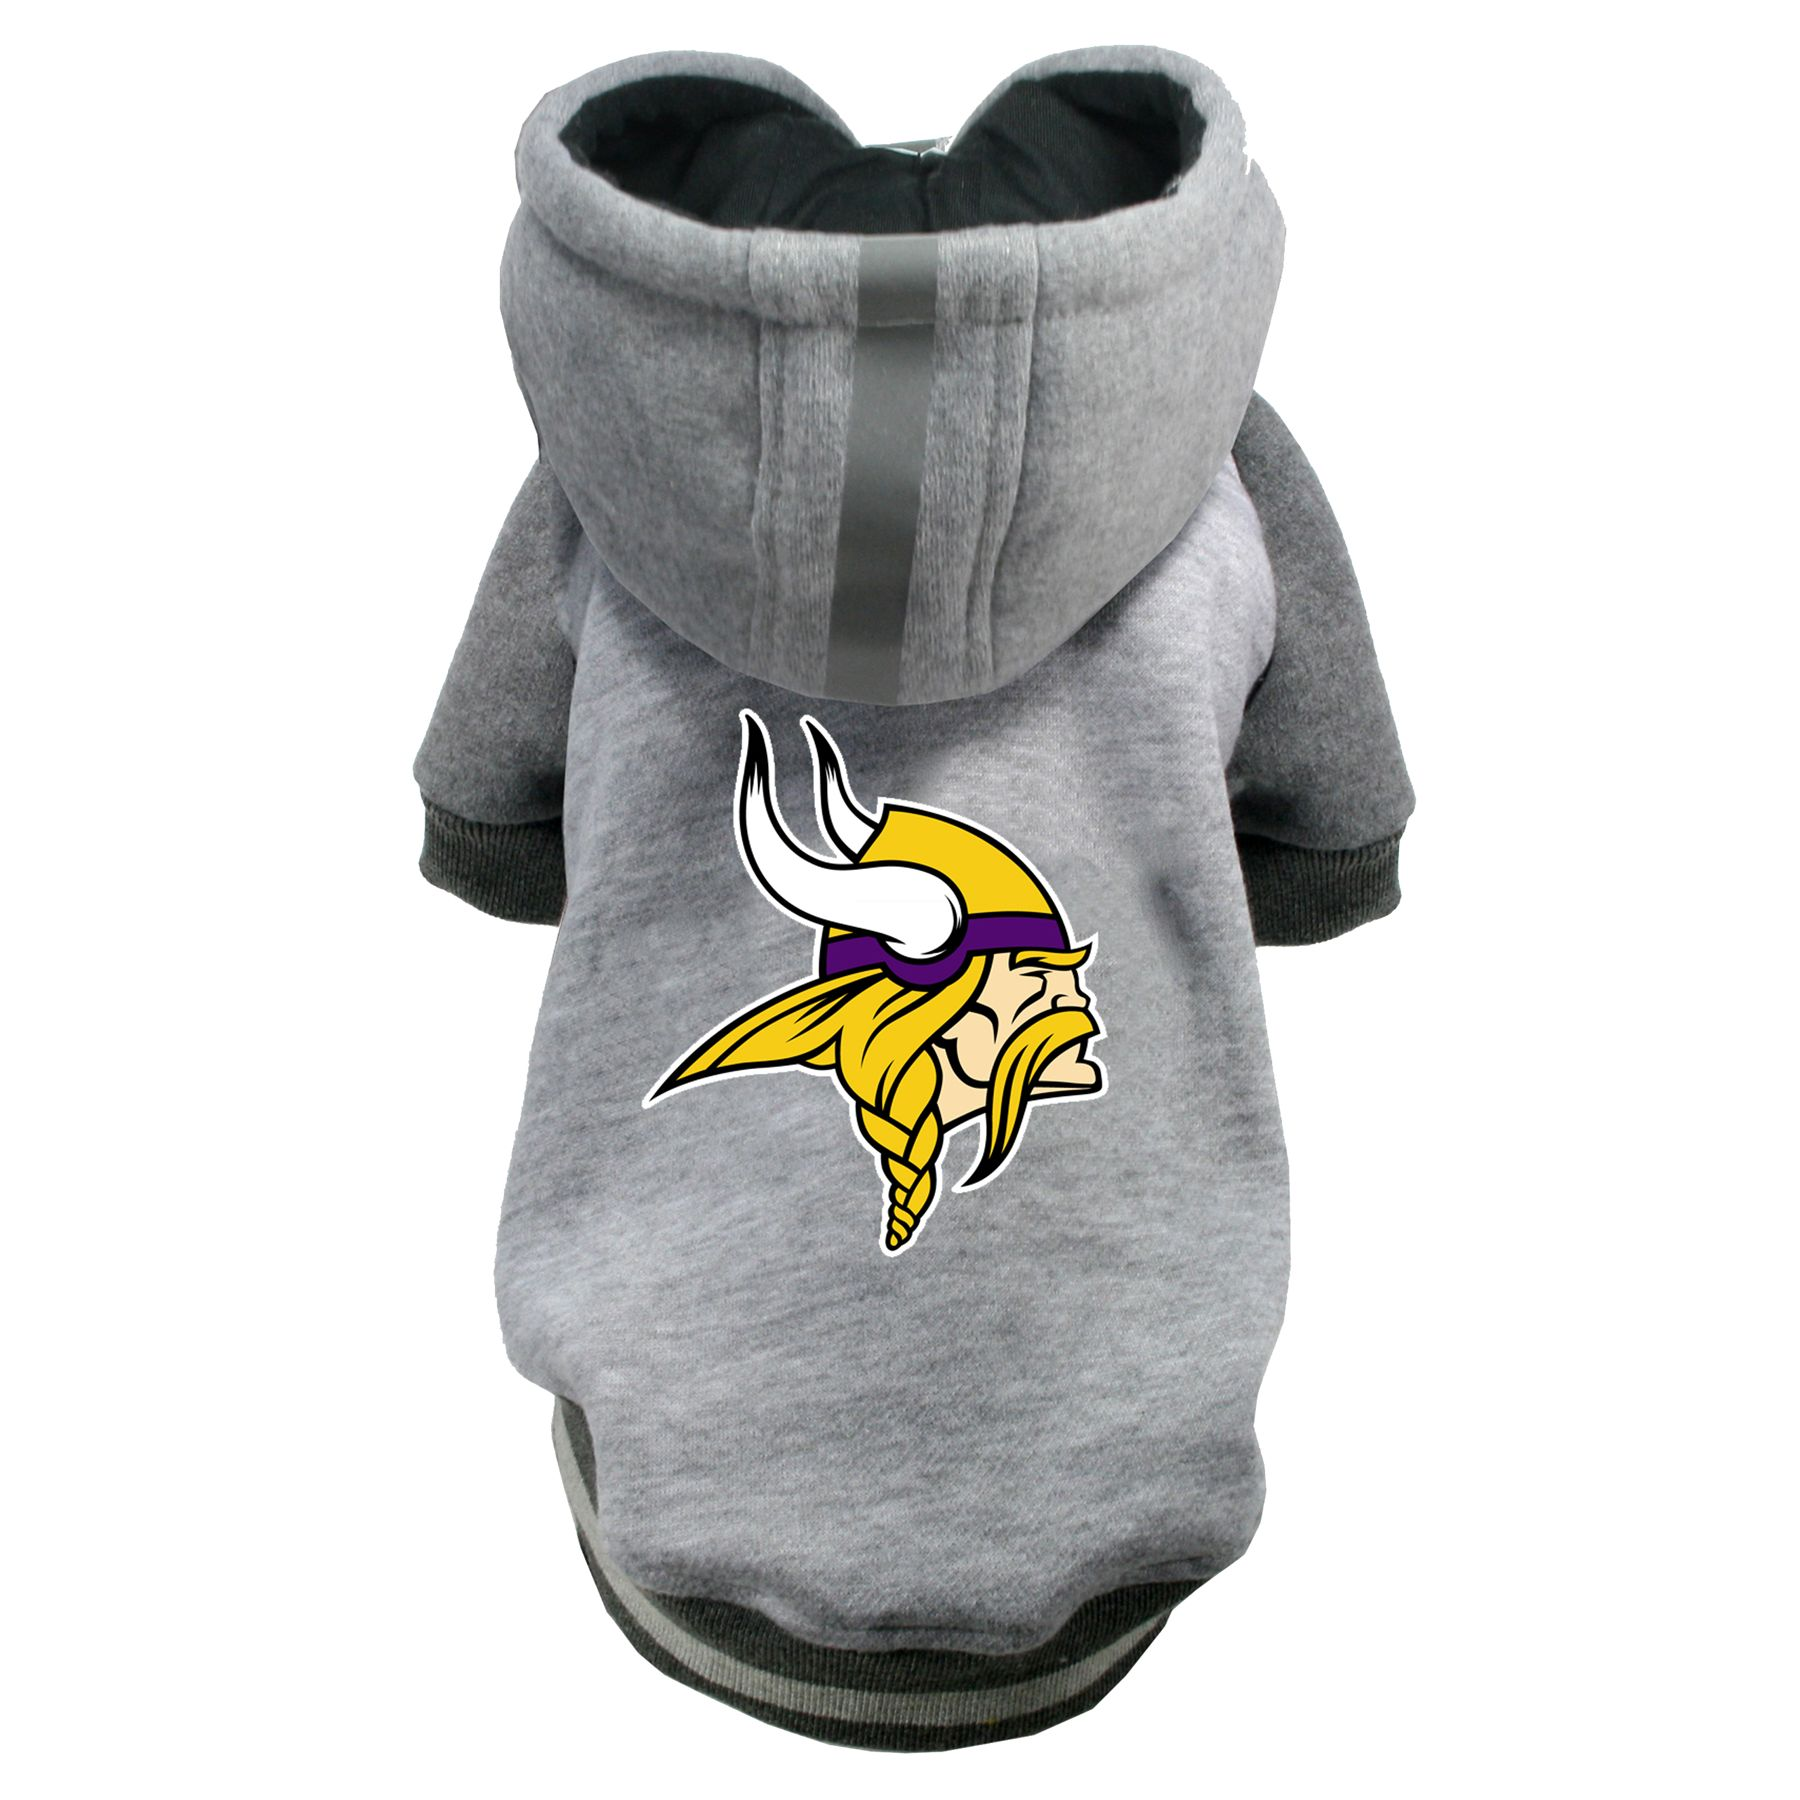 Minnesota Vikings NFL Hoodie size: X Large, Hip Doggie photo